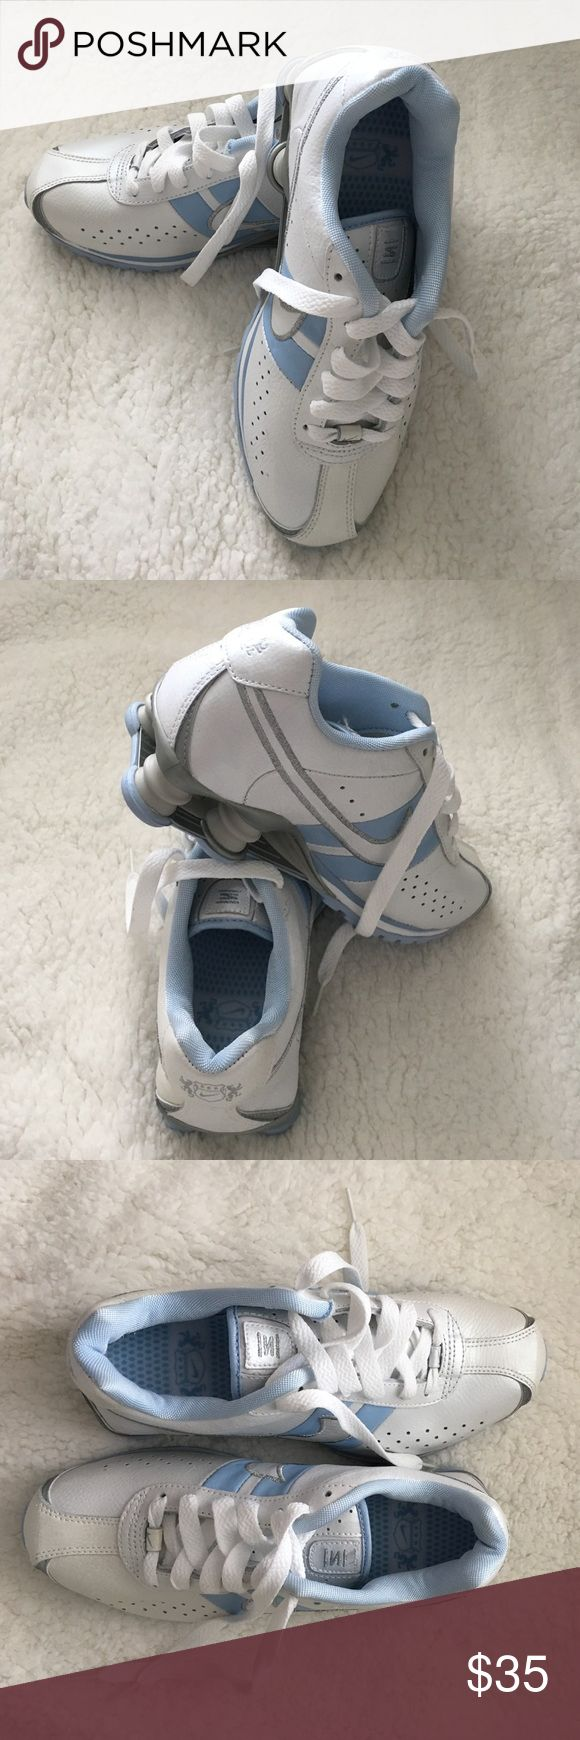 Brand New Classic Nike Shox Brand New Classic Nike Shox. Never worn. No box. Nike Shoes Athletic Shoes